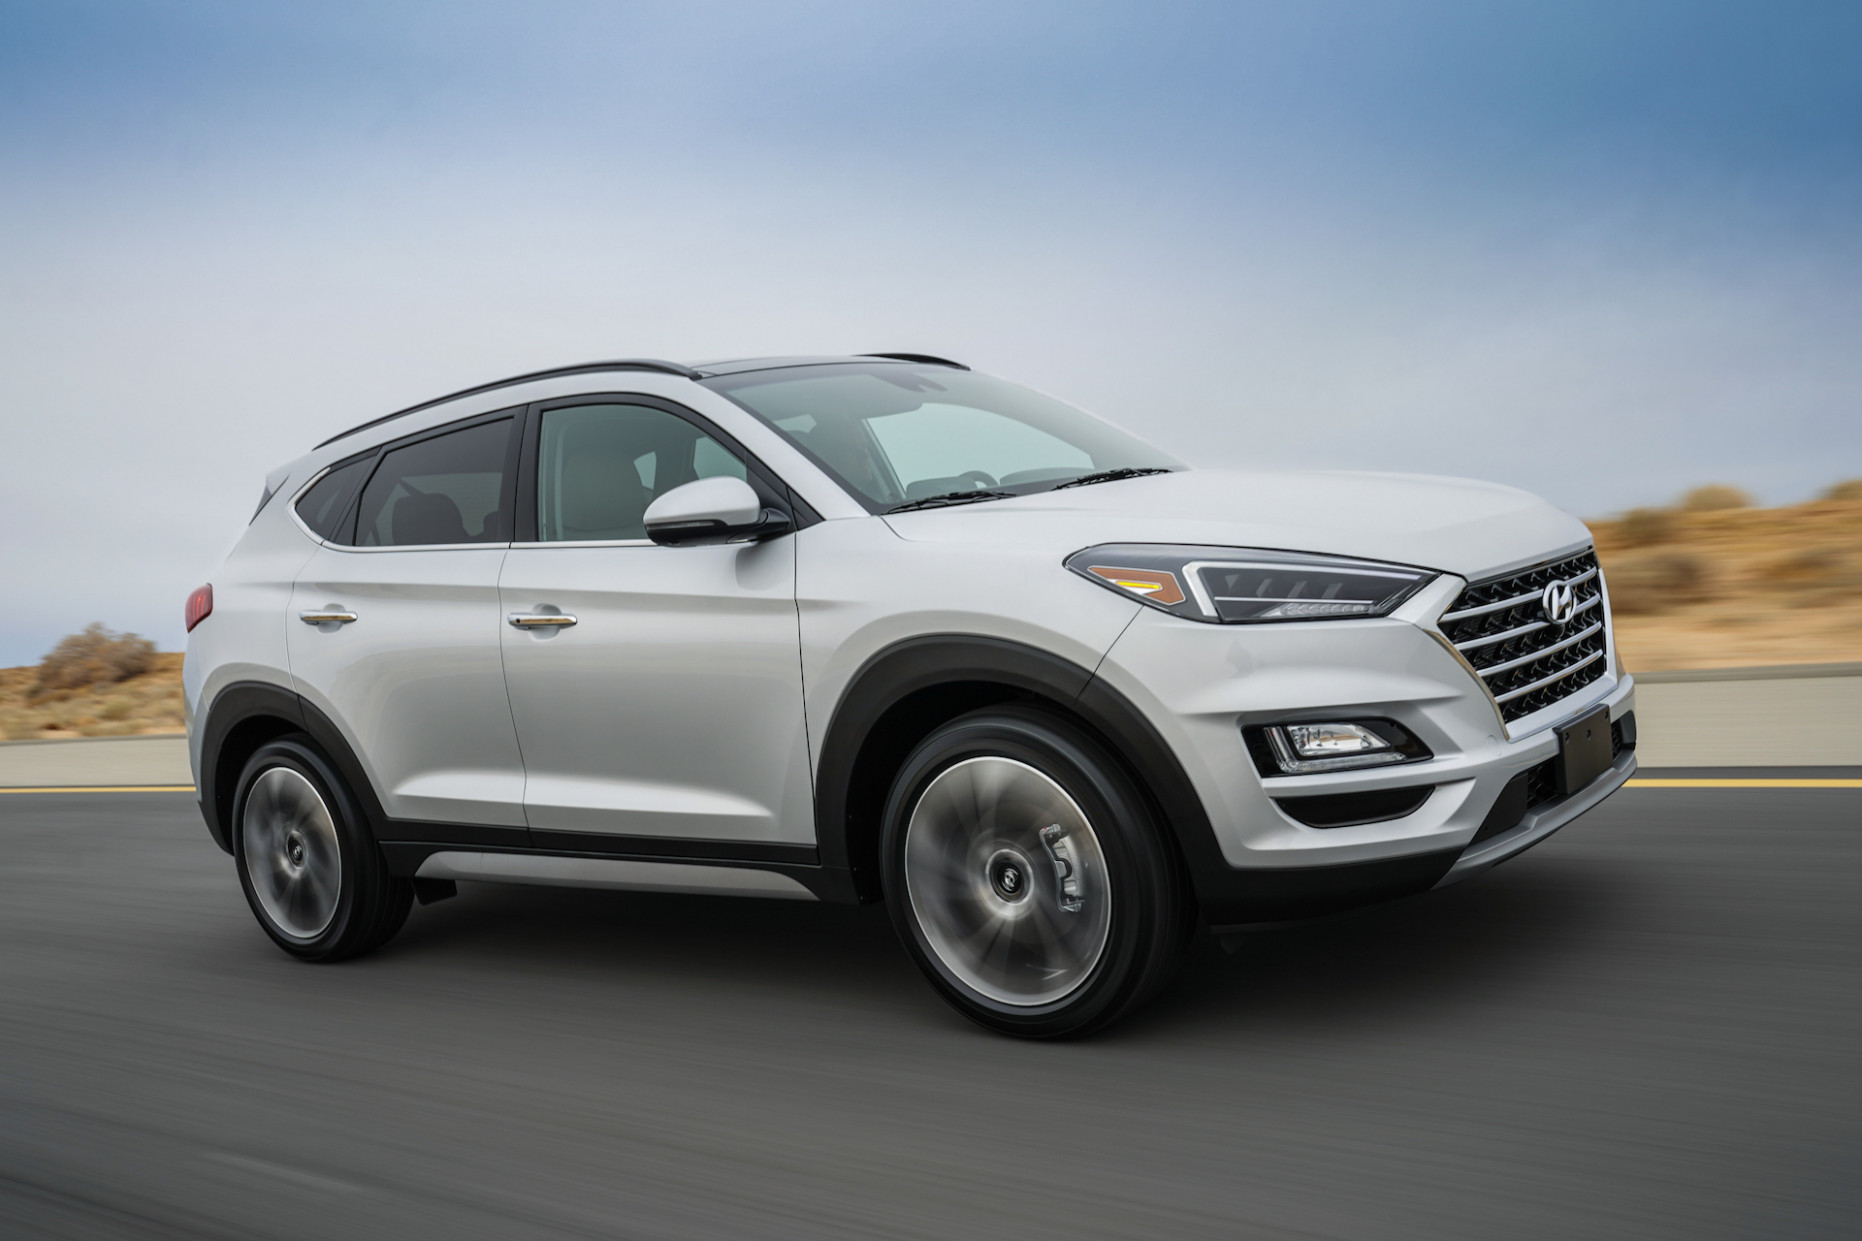 9 Hyundai Tucson Review, Ratings, Specs, Prices, and Photos ..